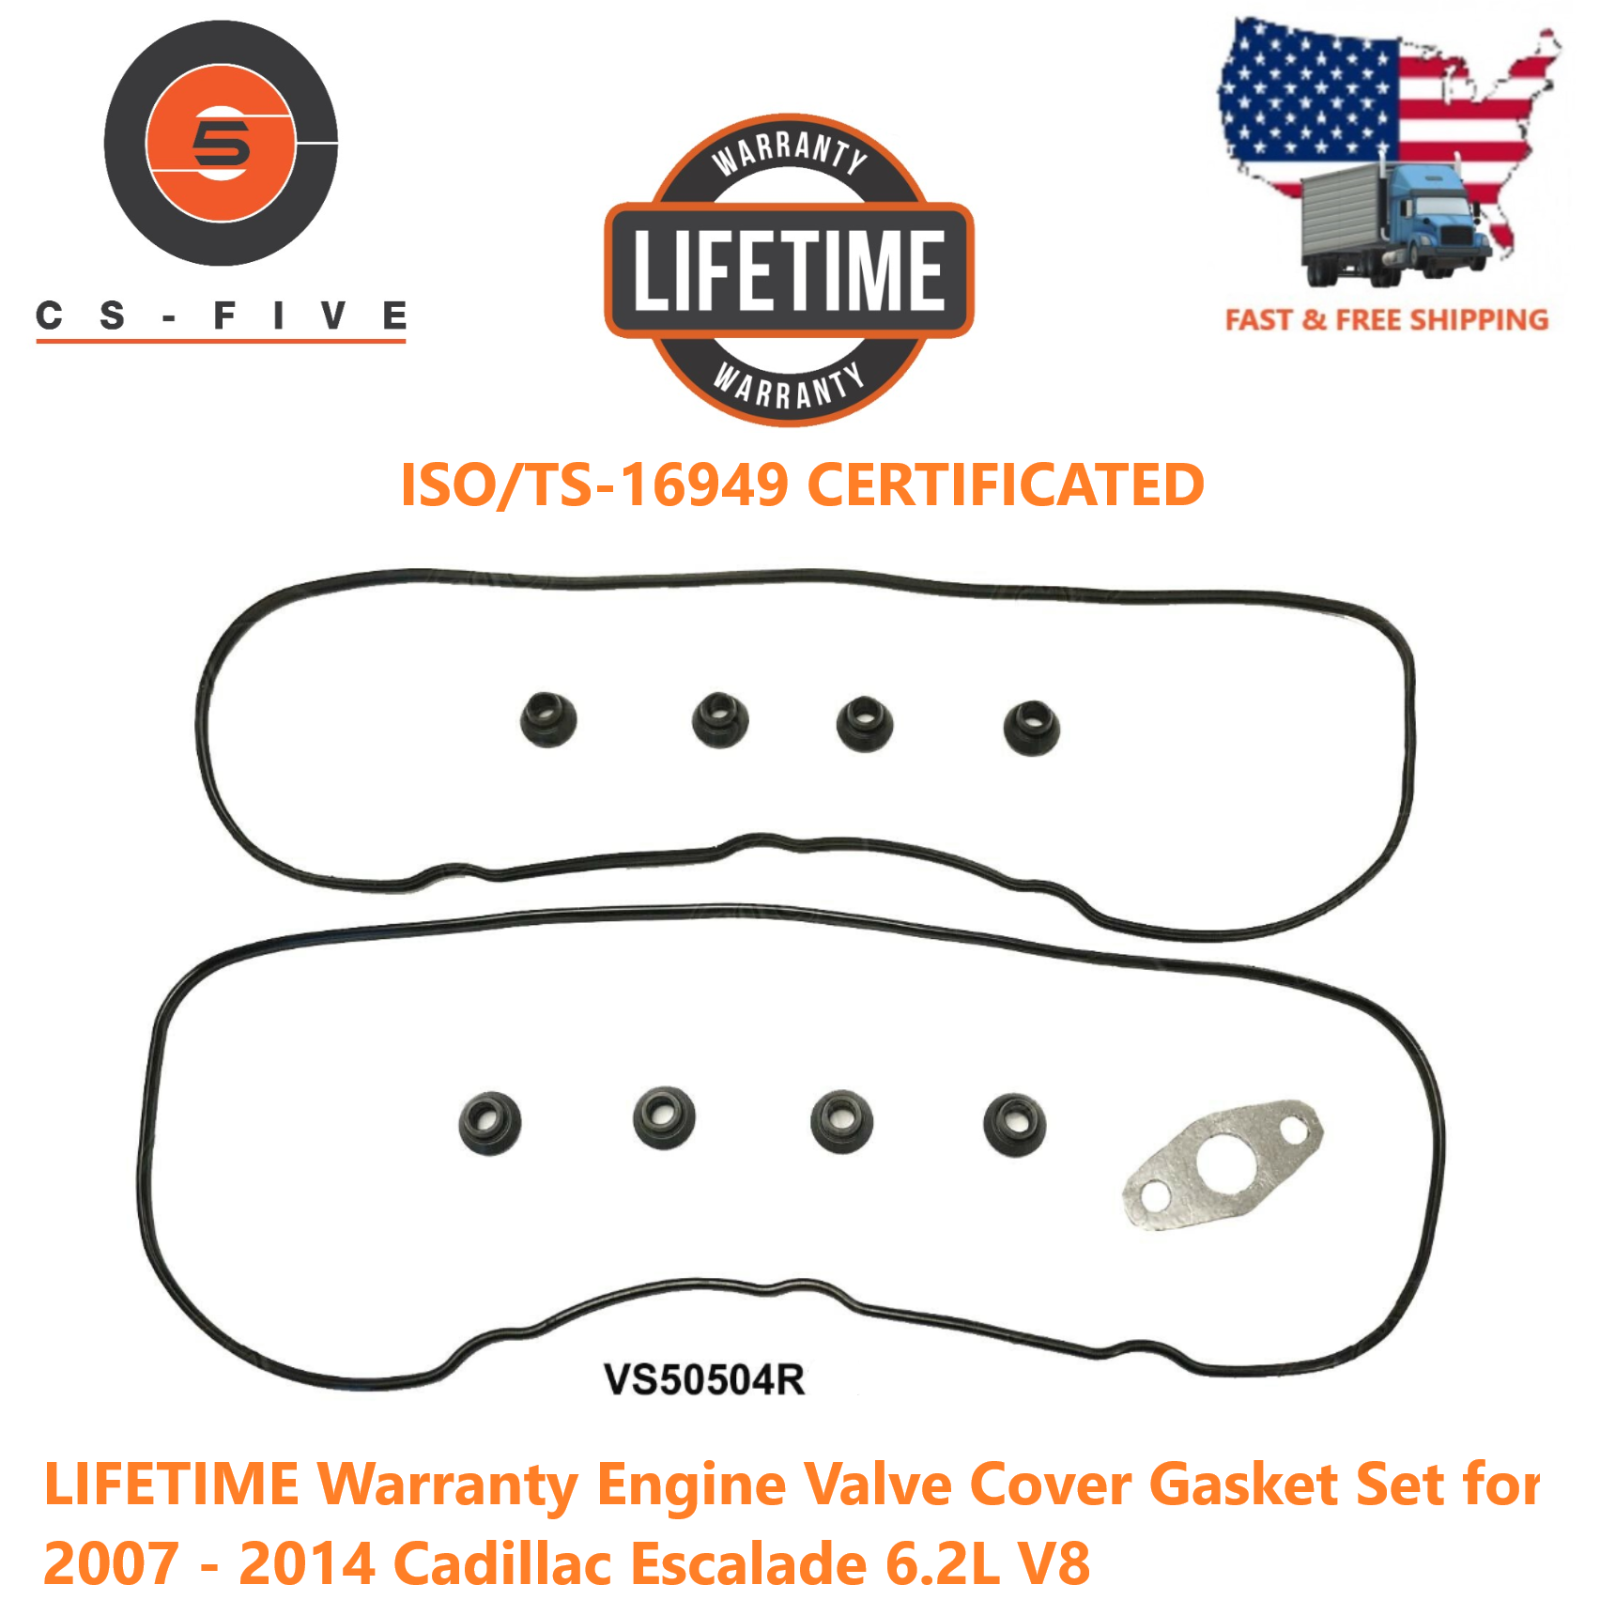 LIFETIME Warranty Engine Valve Cover Gasket Set for 07-14 Cadillac Escalade 6.2L 12560696 VS50504R